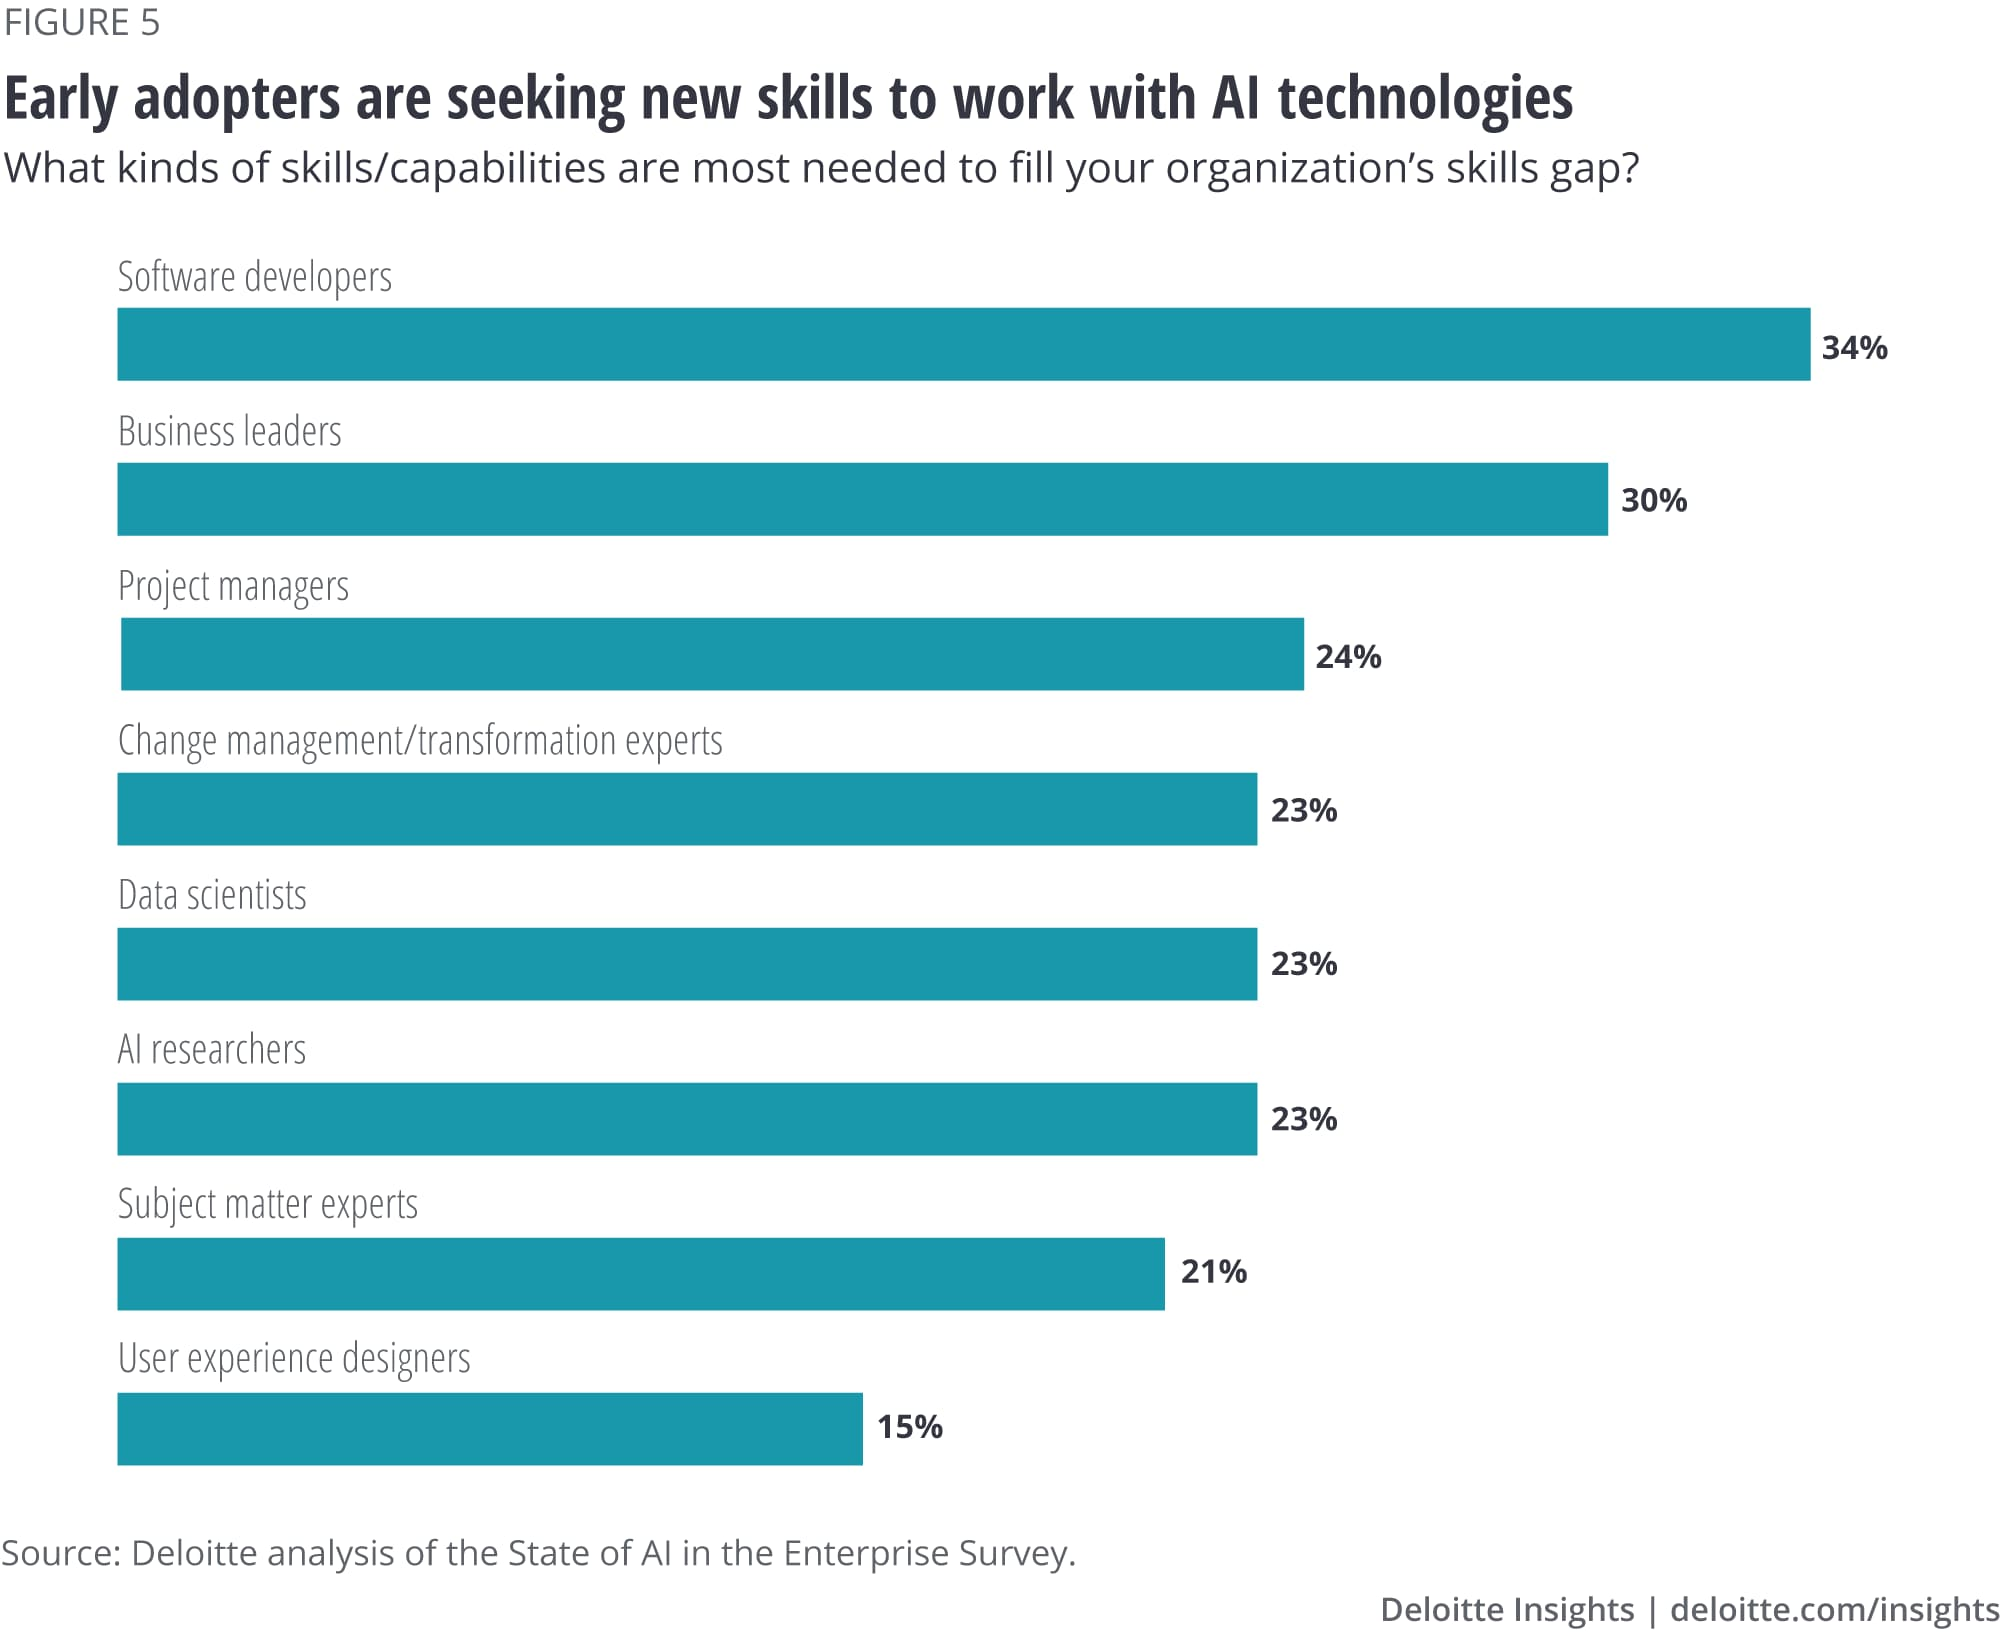 Early adopters are seeking new skills to work with AI technologies